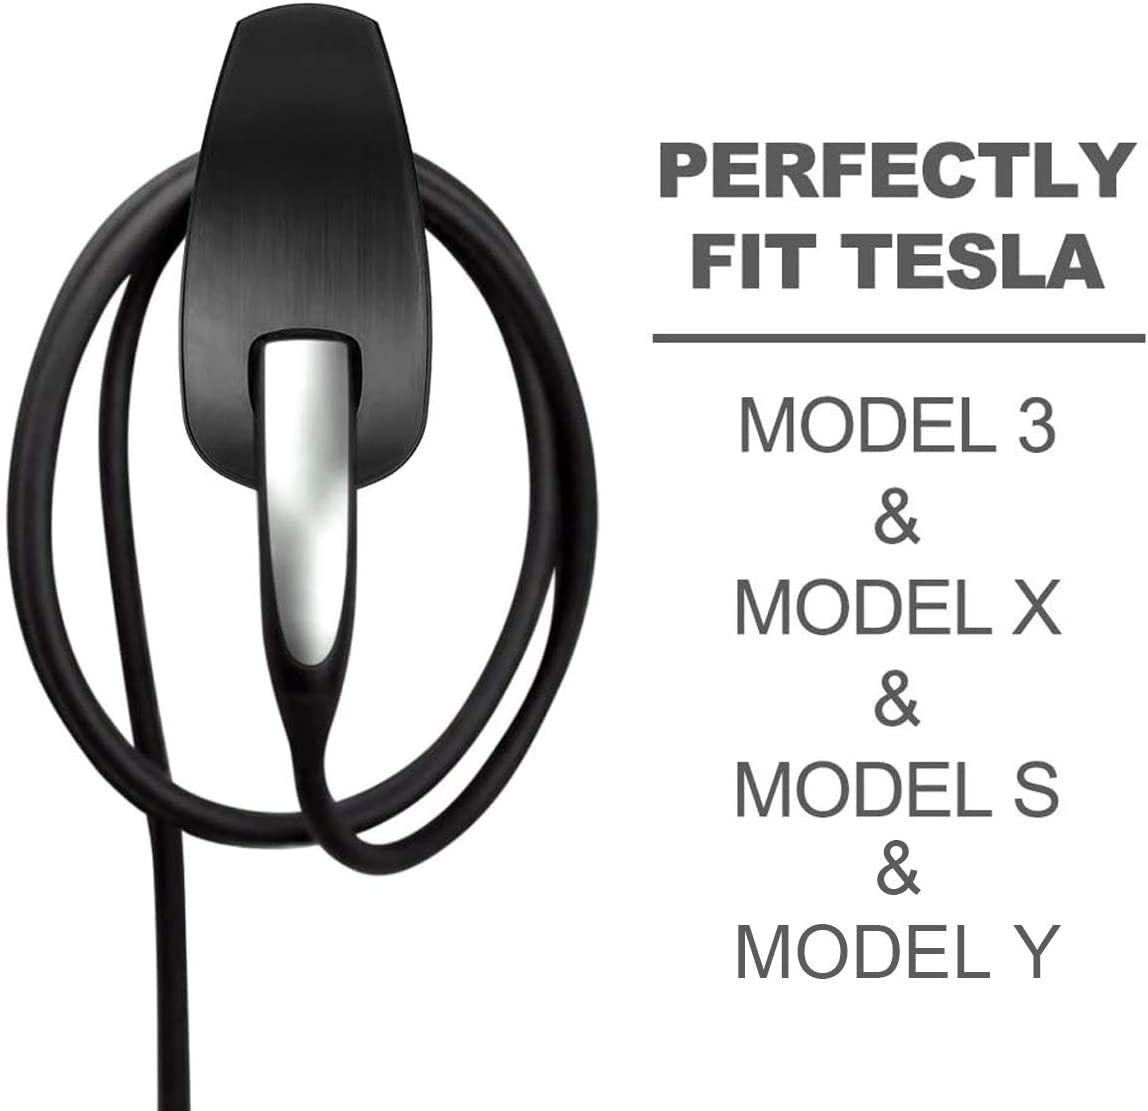 Tesla Miami Mall Charging Cable Omaha Mall Organizer Wall Holder Char Mount Connector